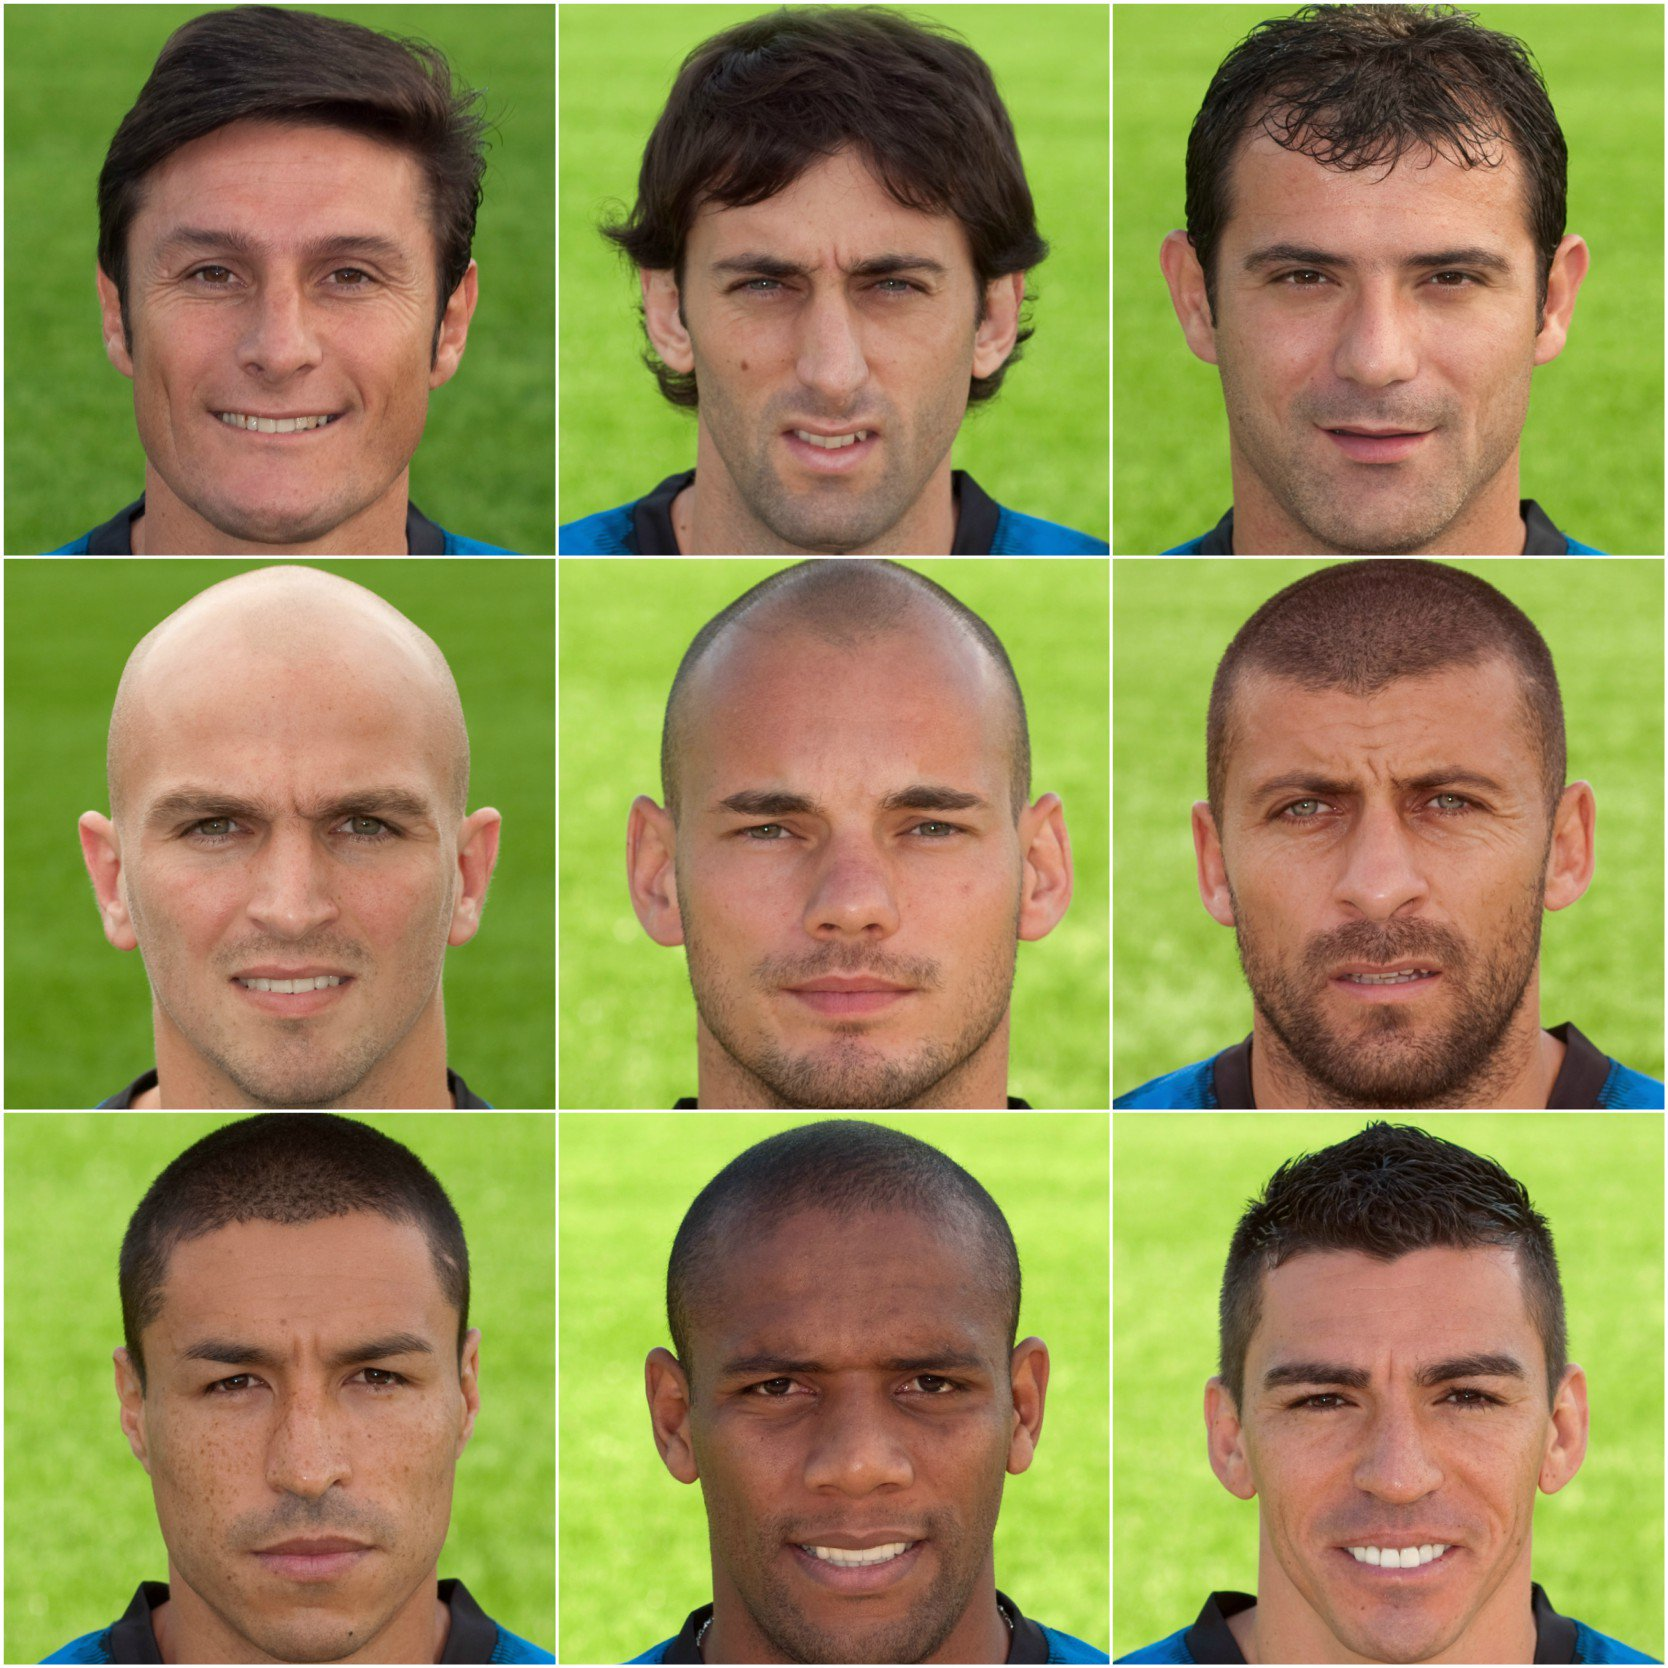 Inter 2010 ��  Favourite player? ��⚫  #UCL #ThrowbackThursday https://t.co/xyAx4L6f7V